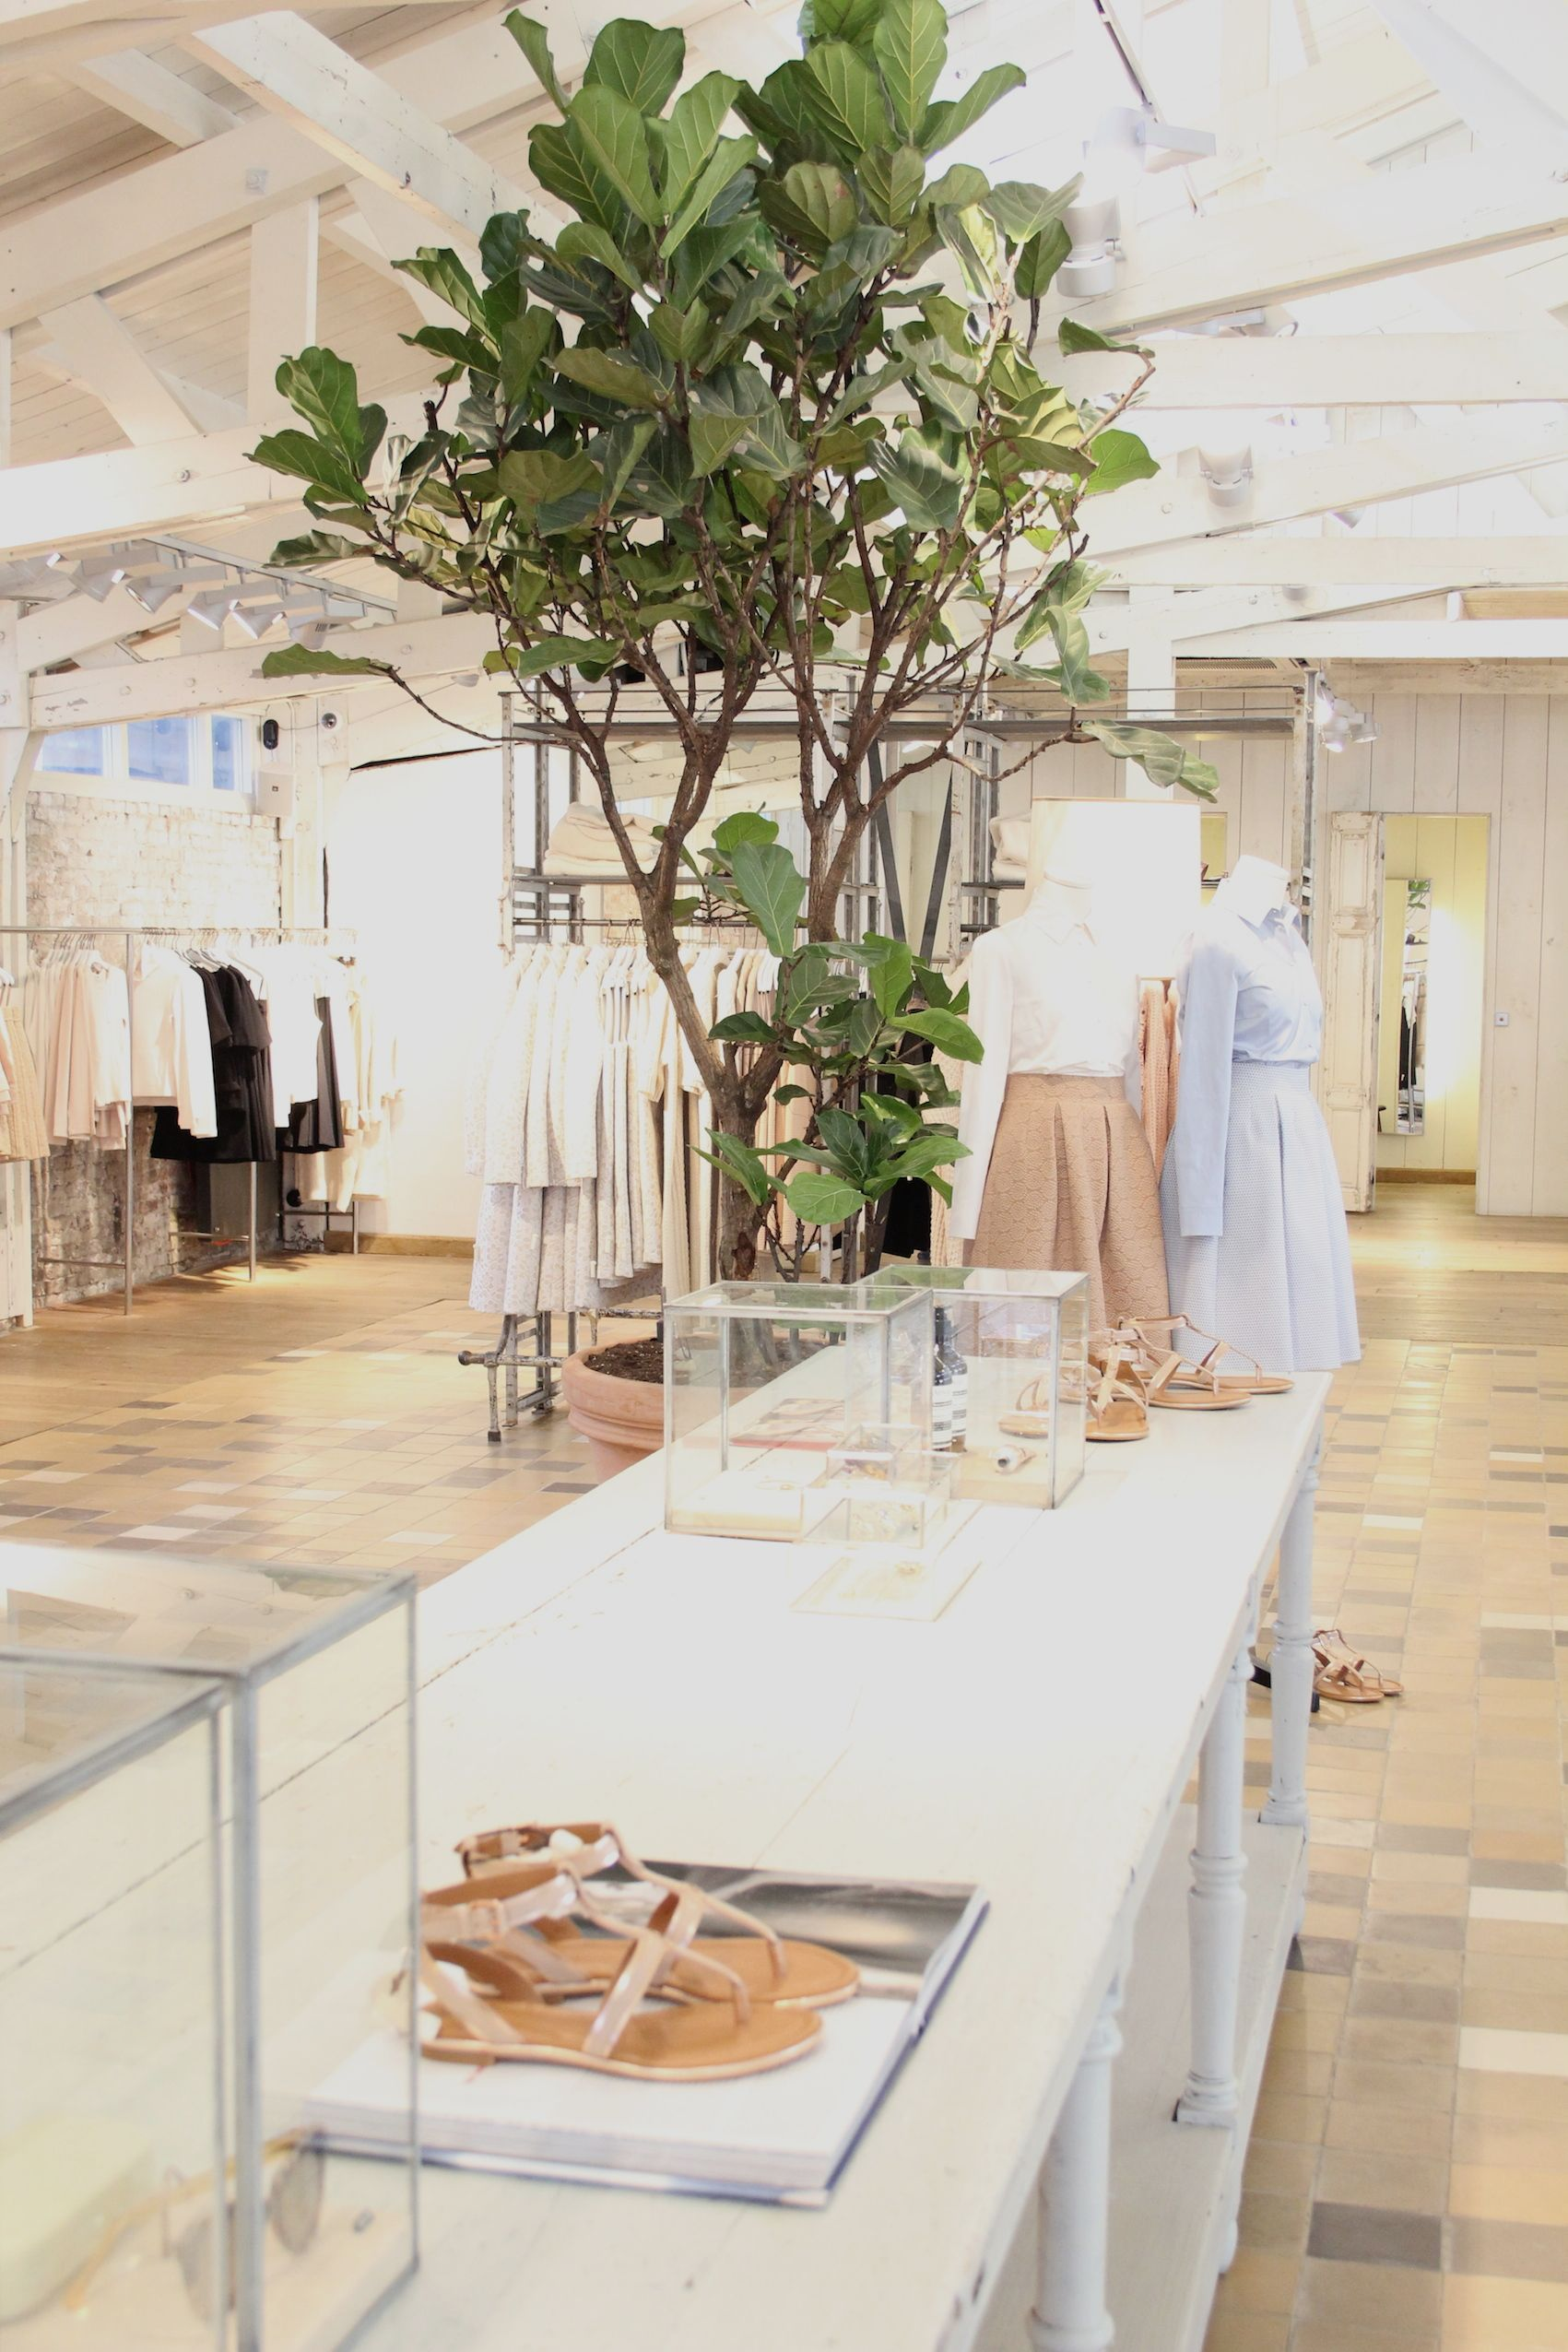 Interieur Winkel Bergen Bergen Noord Holland Eropuit Clothing Boutique Interior